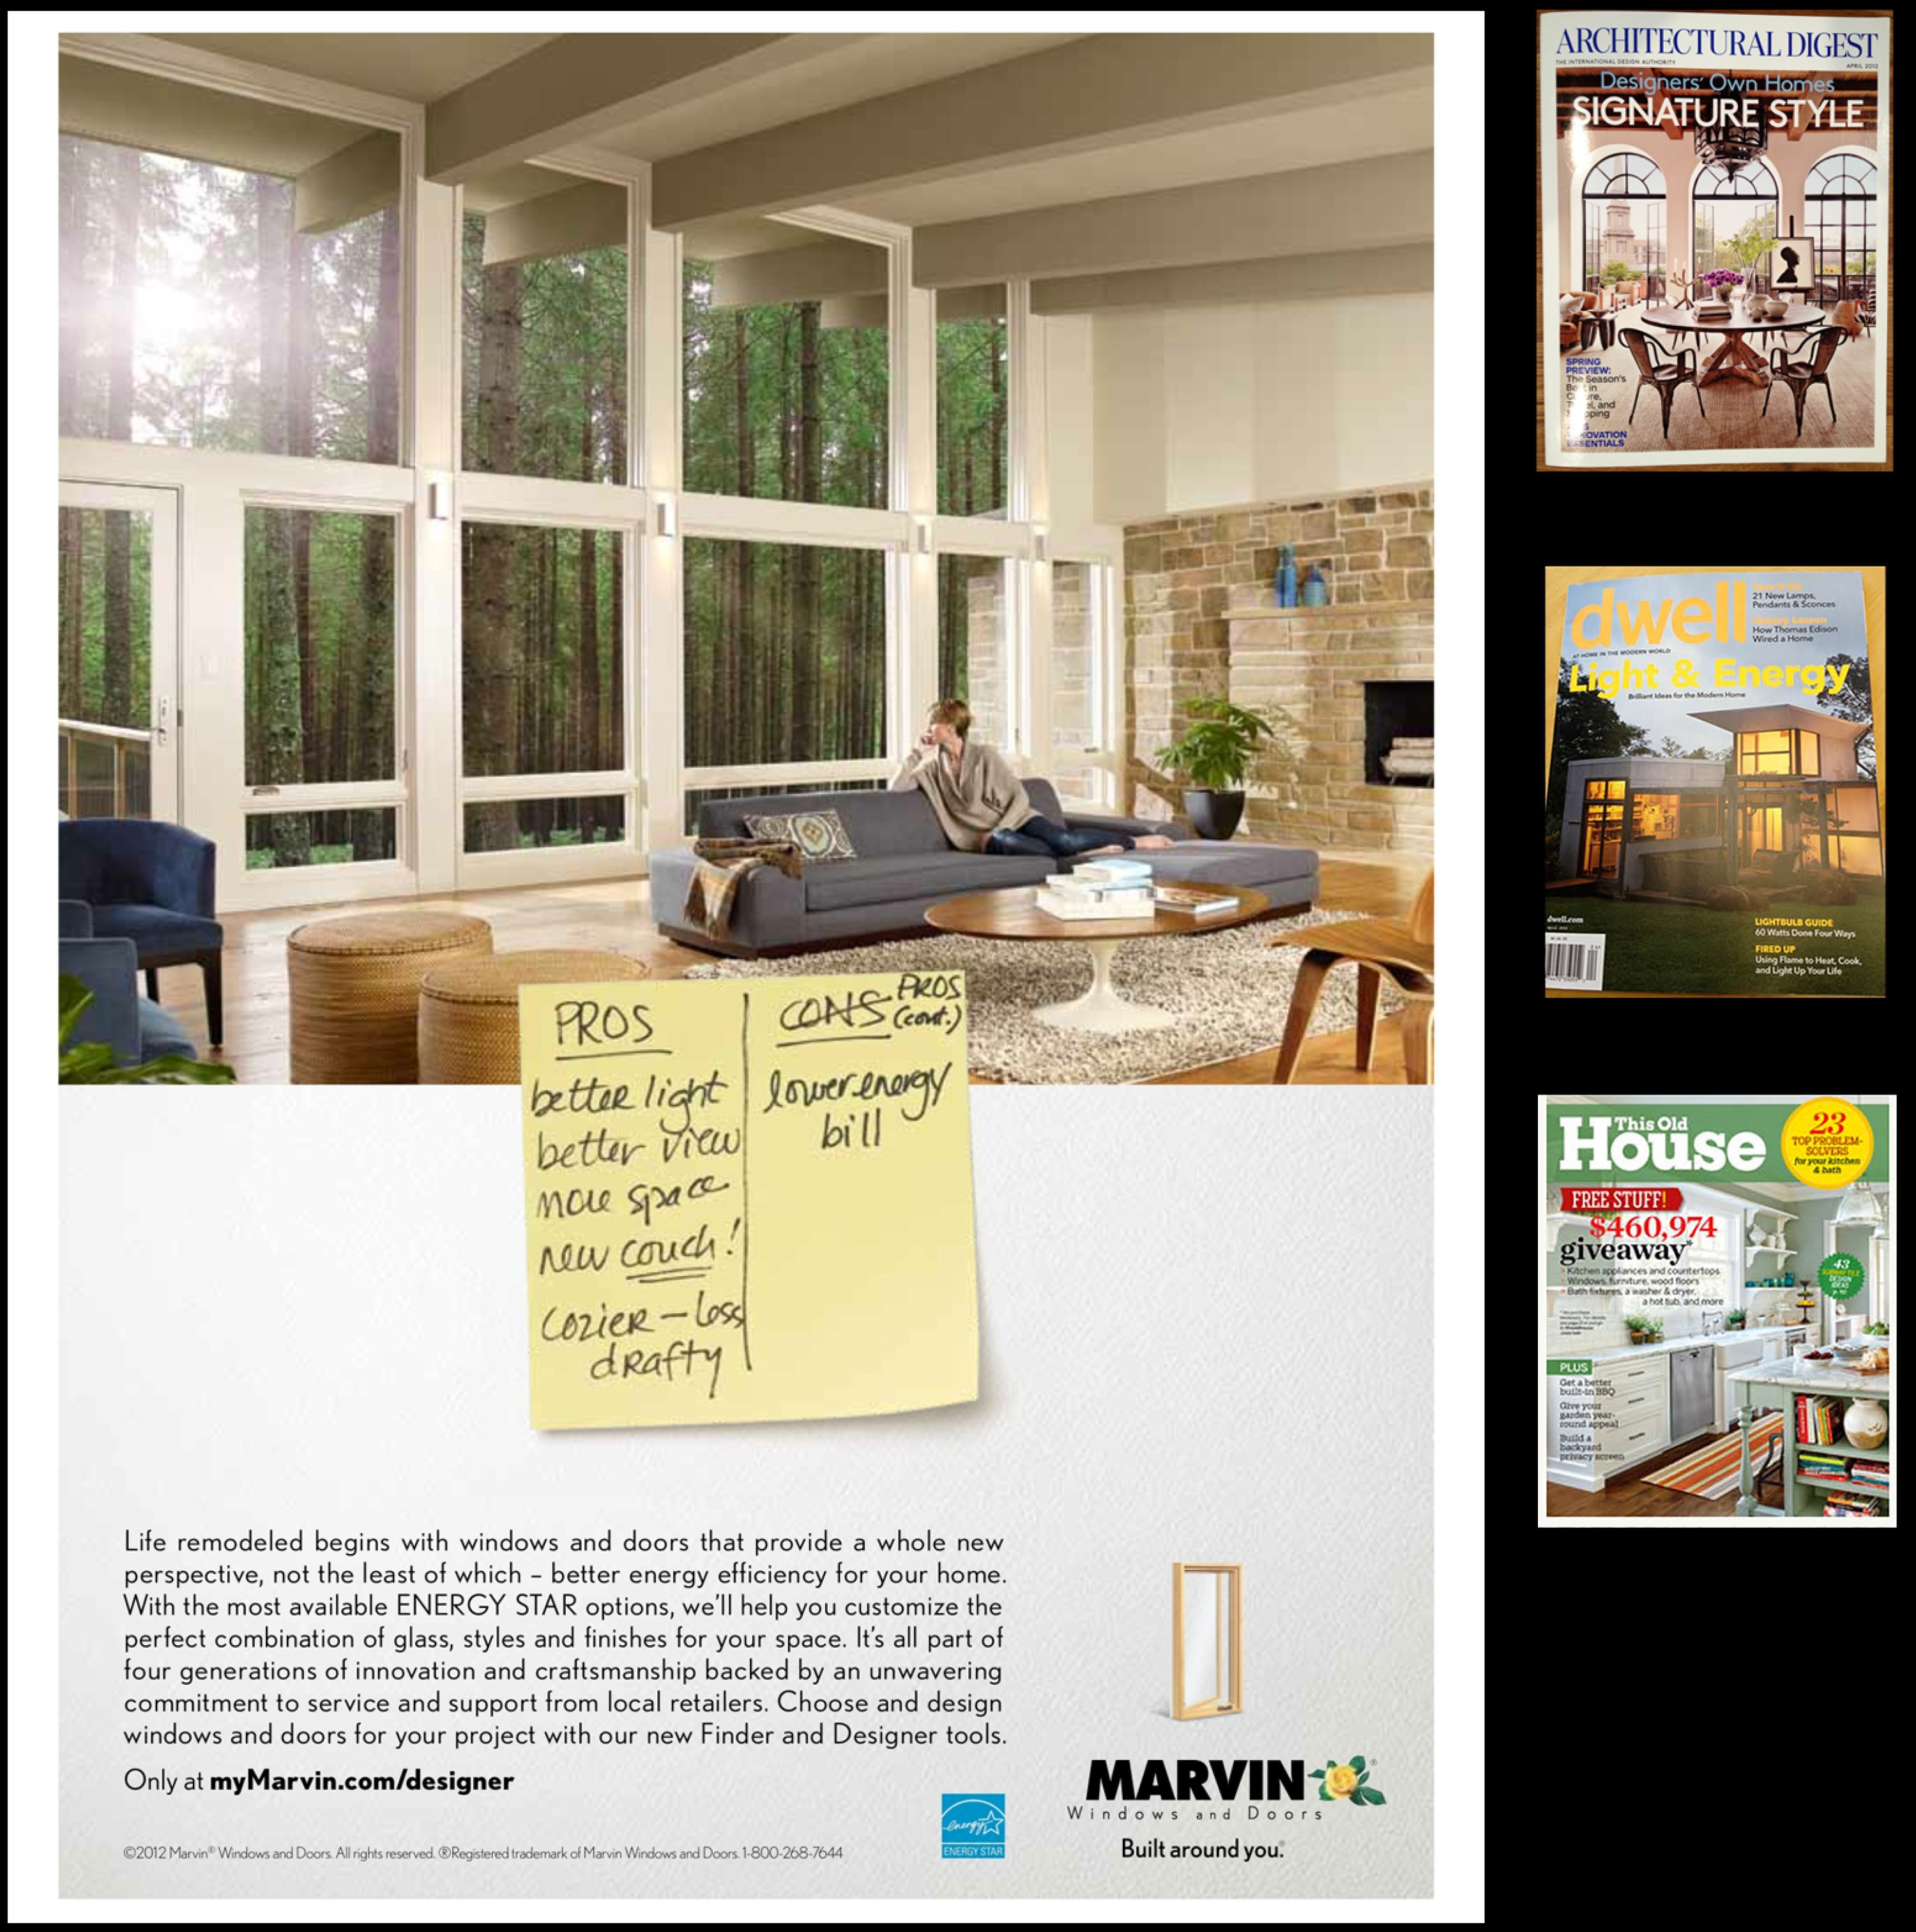 2e architects window design featured in national ad for Ad house